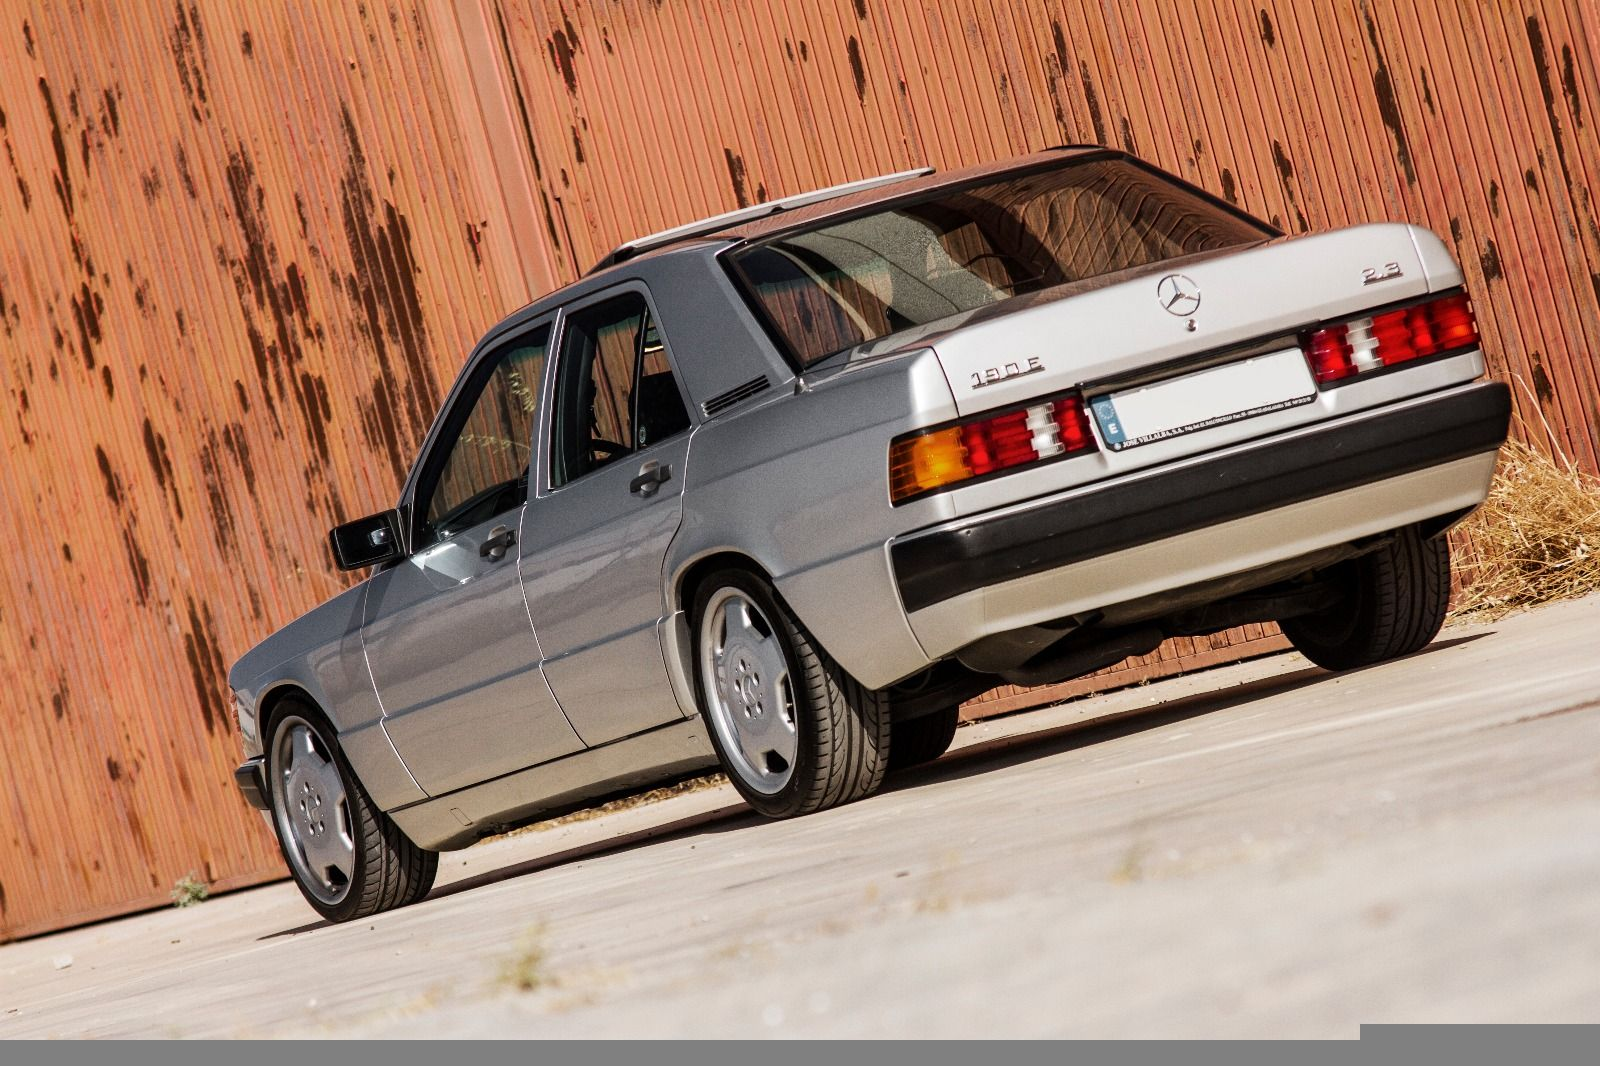 Mercedes Benz 190e 2 3 Amg Alcarrian Concept Ral 722 Monoblock 17 Power Engine E500 24v Breaks Bilstein Eibach Kit Rh Mercedes Benz Mercedes Super Autos